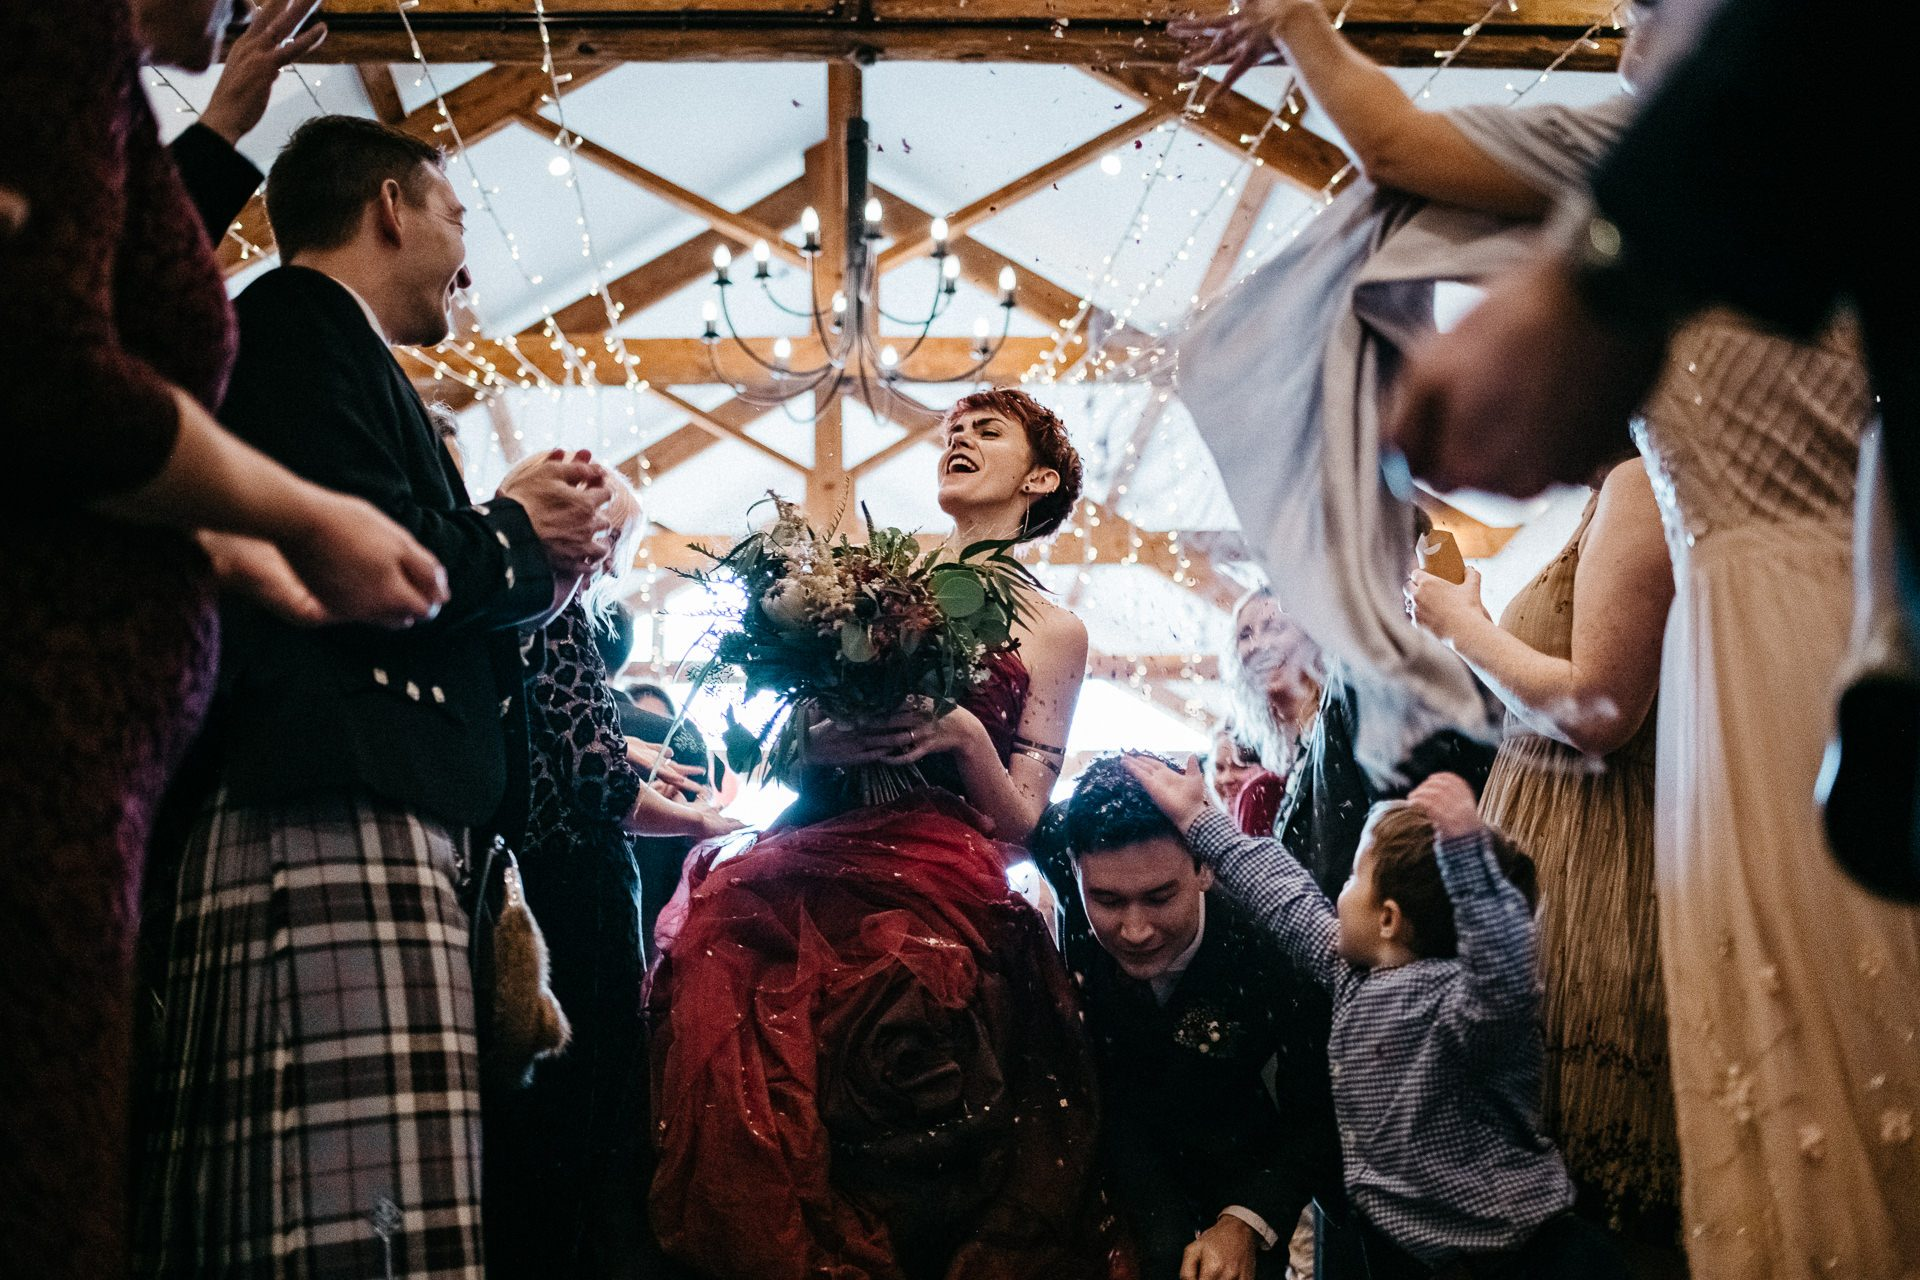 0018-DEVON-SOMERSET-WEDDING-PHOTOGRAPHER-0056-BEST-OF-2019-LOUISE-MAY-DEVON-SOMERSET-WEDDING-PHOTOGRAPHY-LM1_5459